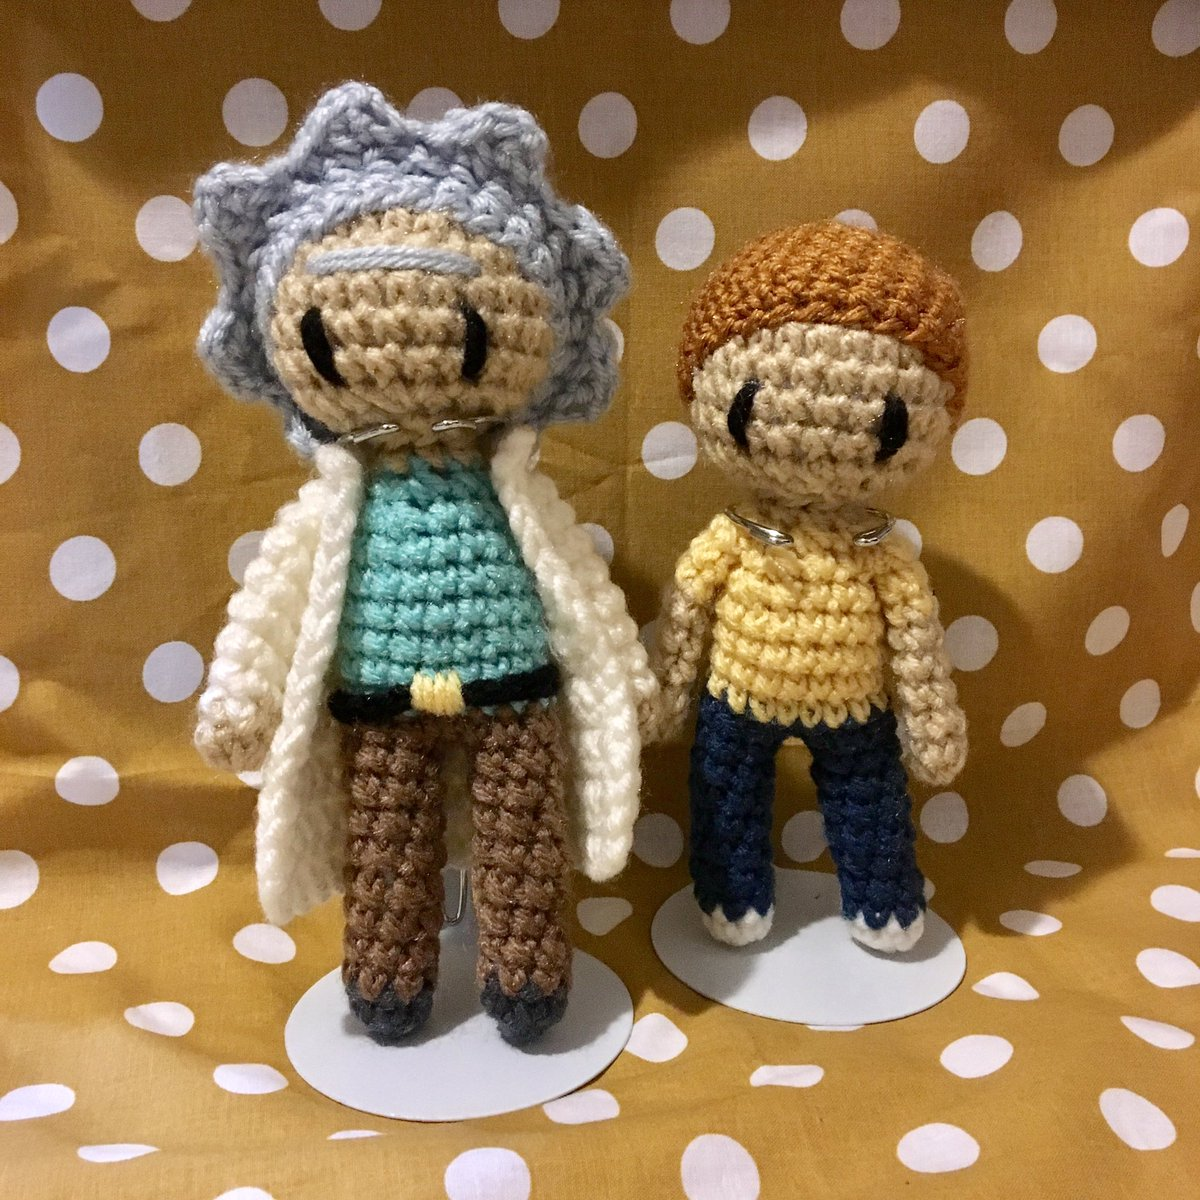 Rick and Morty Rick Sanchez Amigurumi by crushed88 on Etsy ... | 1200x1200